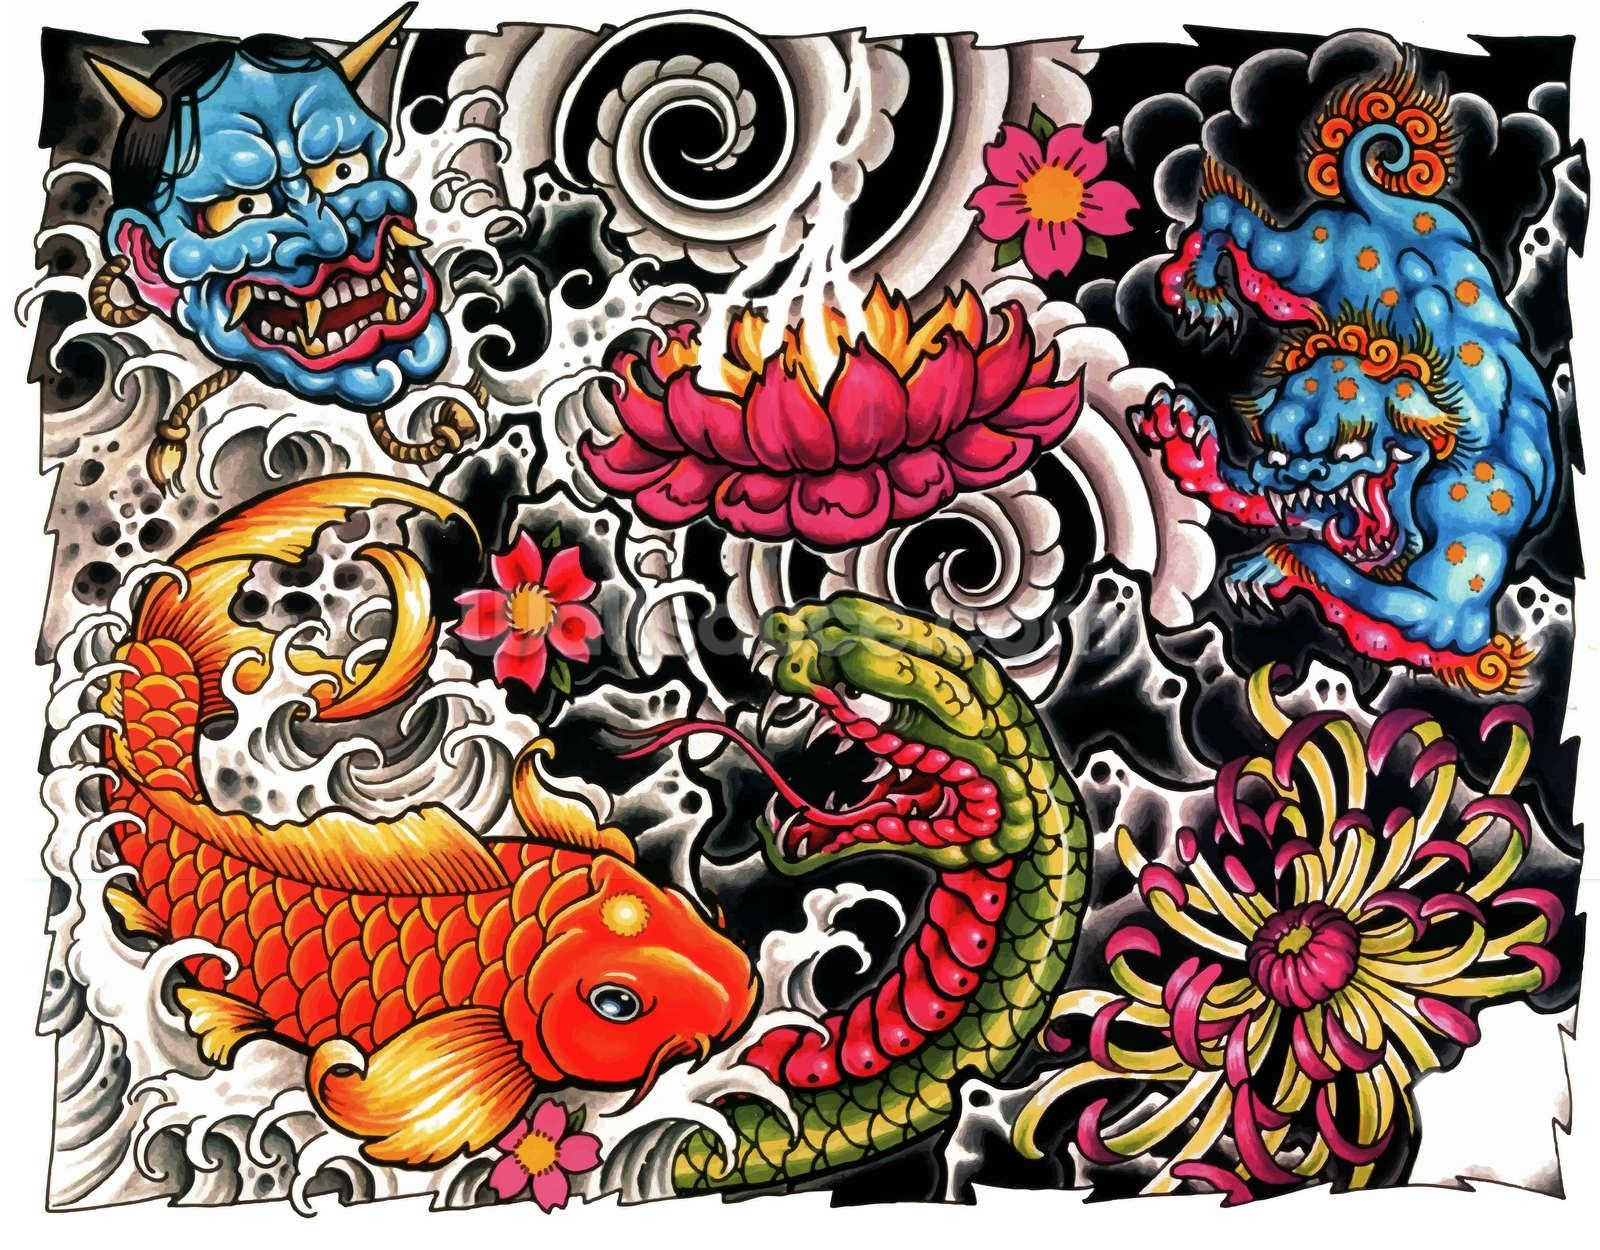 Tattoo Wallpaper Wall Mural | Wallsauce Usa Pertaining To Tattoo Wall Art (View 14 of 20)